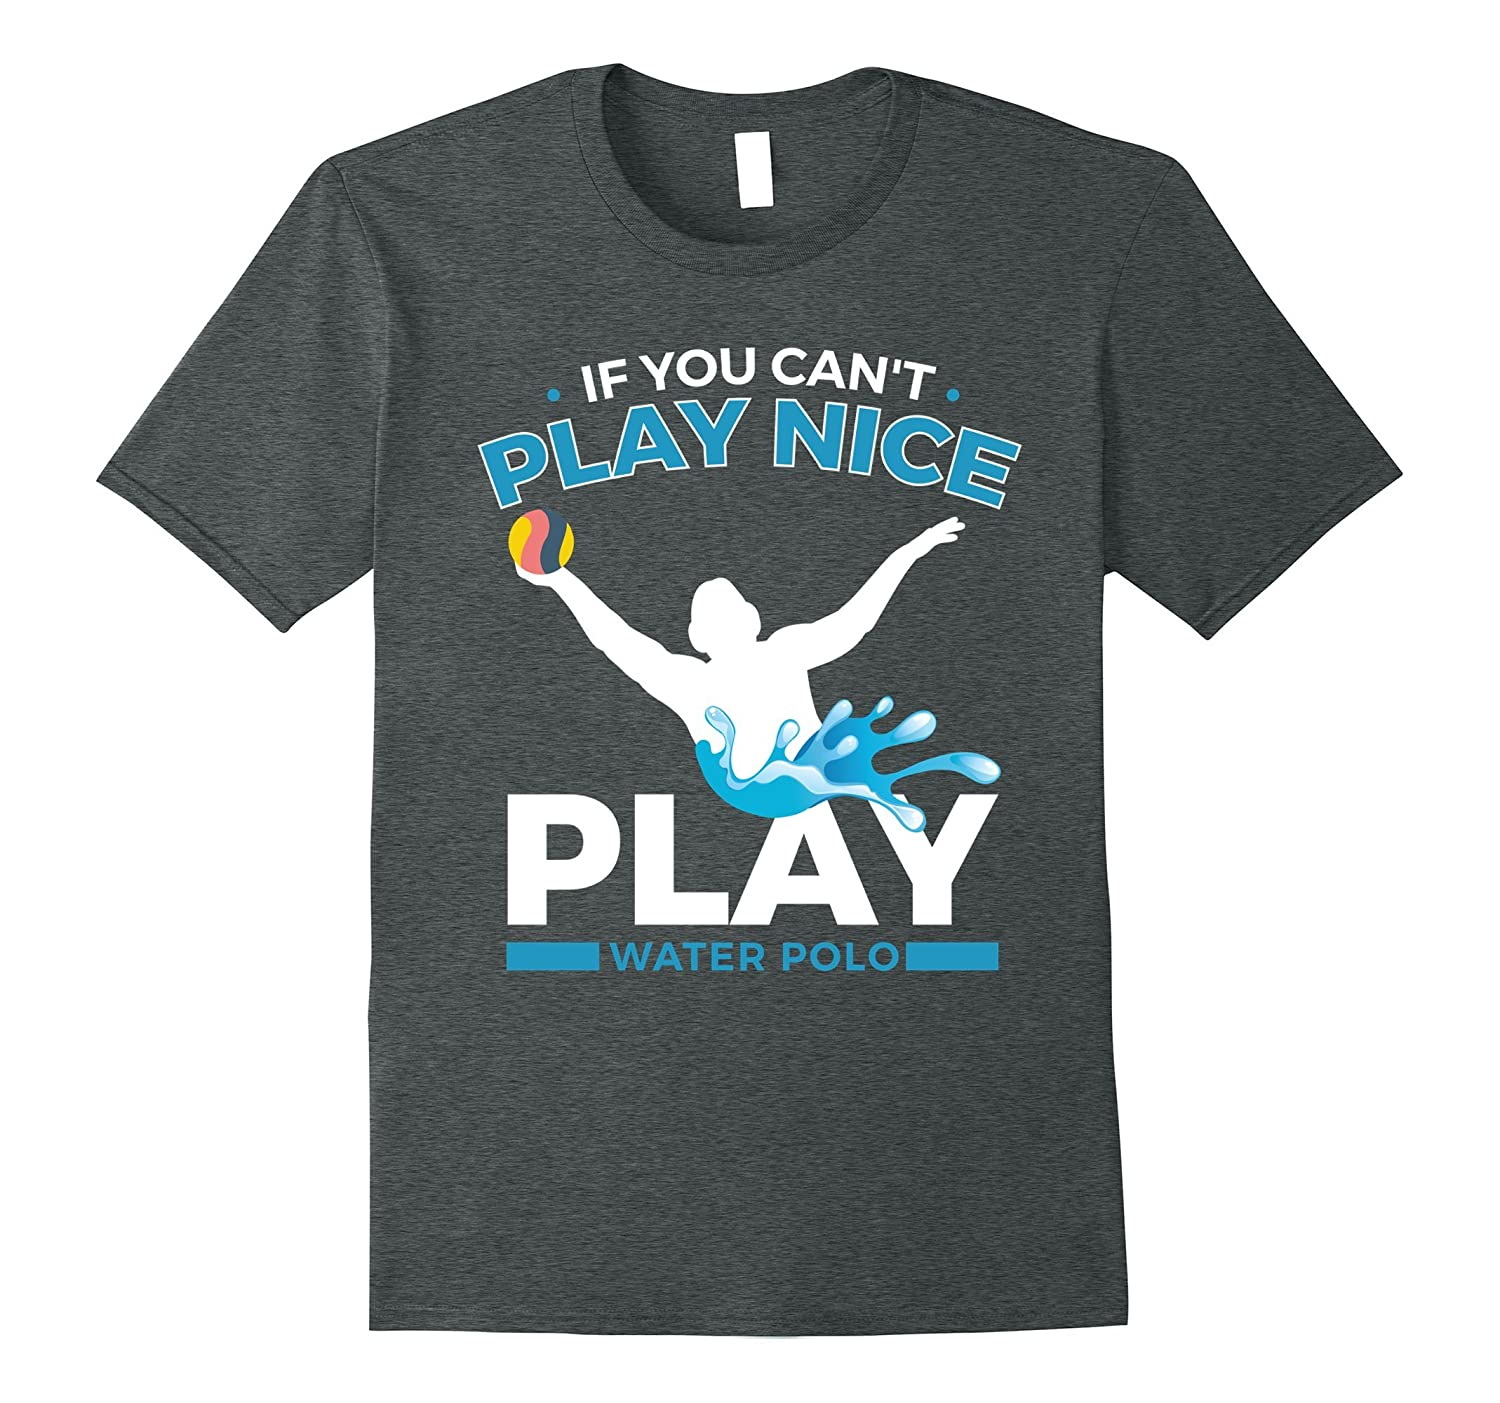 You Can T Play Boxing Shirt: If You Can't Play Nice Play Water Polo T-Shirt-T-Shirt